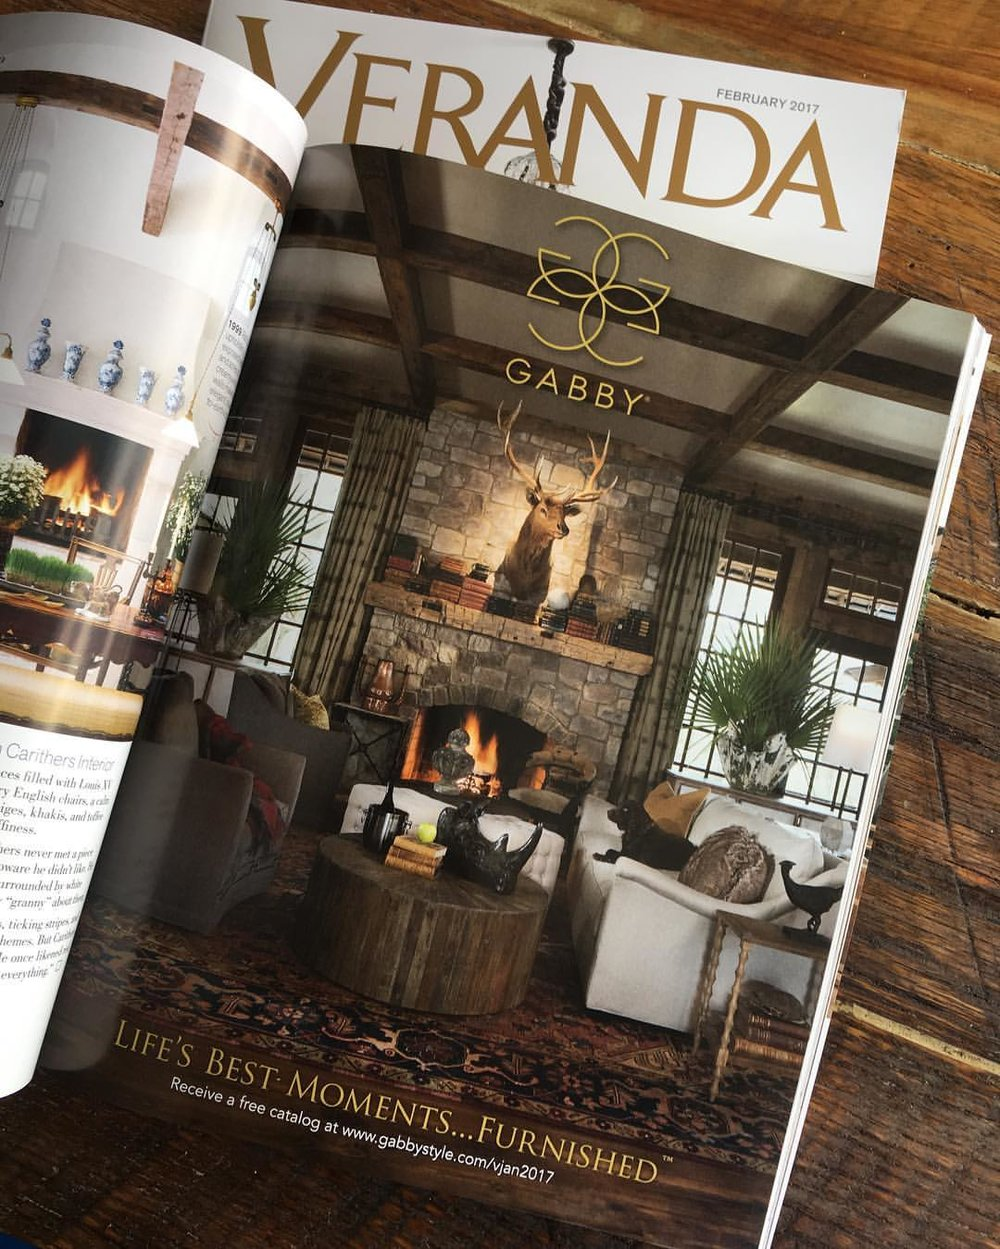 The finished product in the February 2017 Issue of Veranda Magazine.